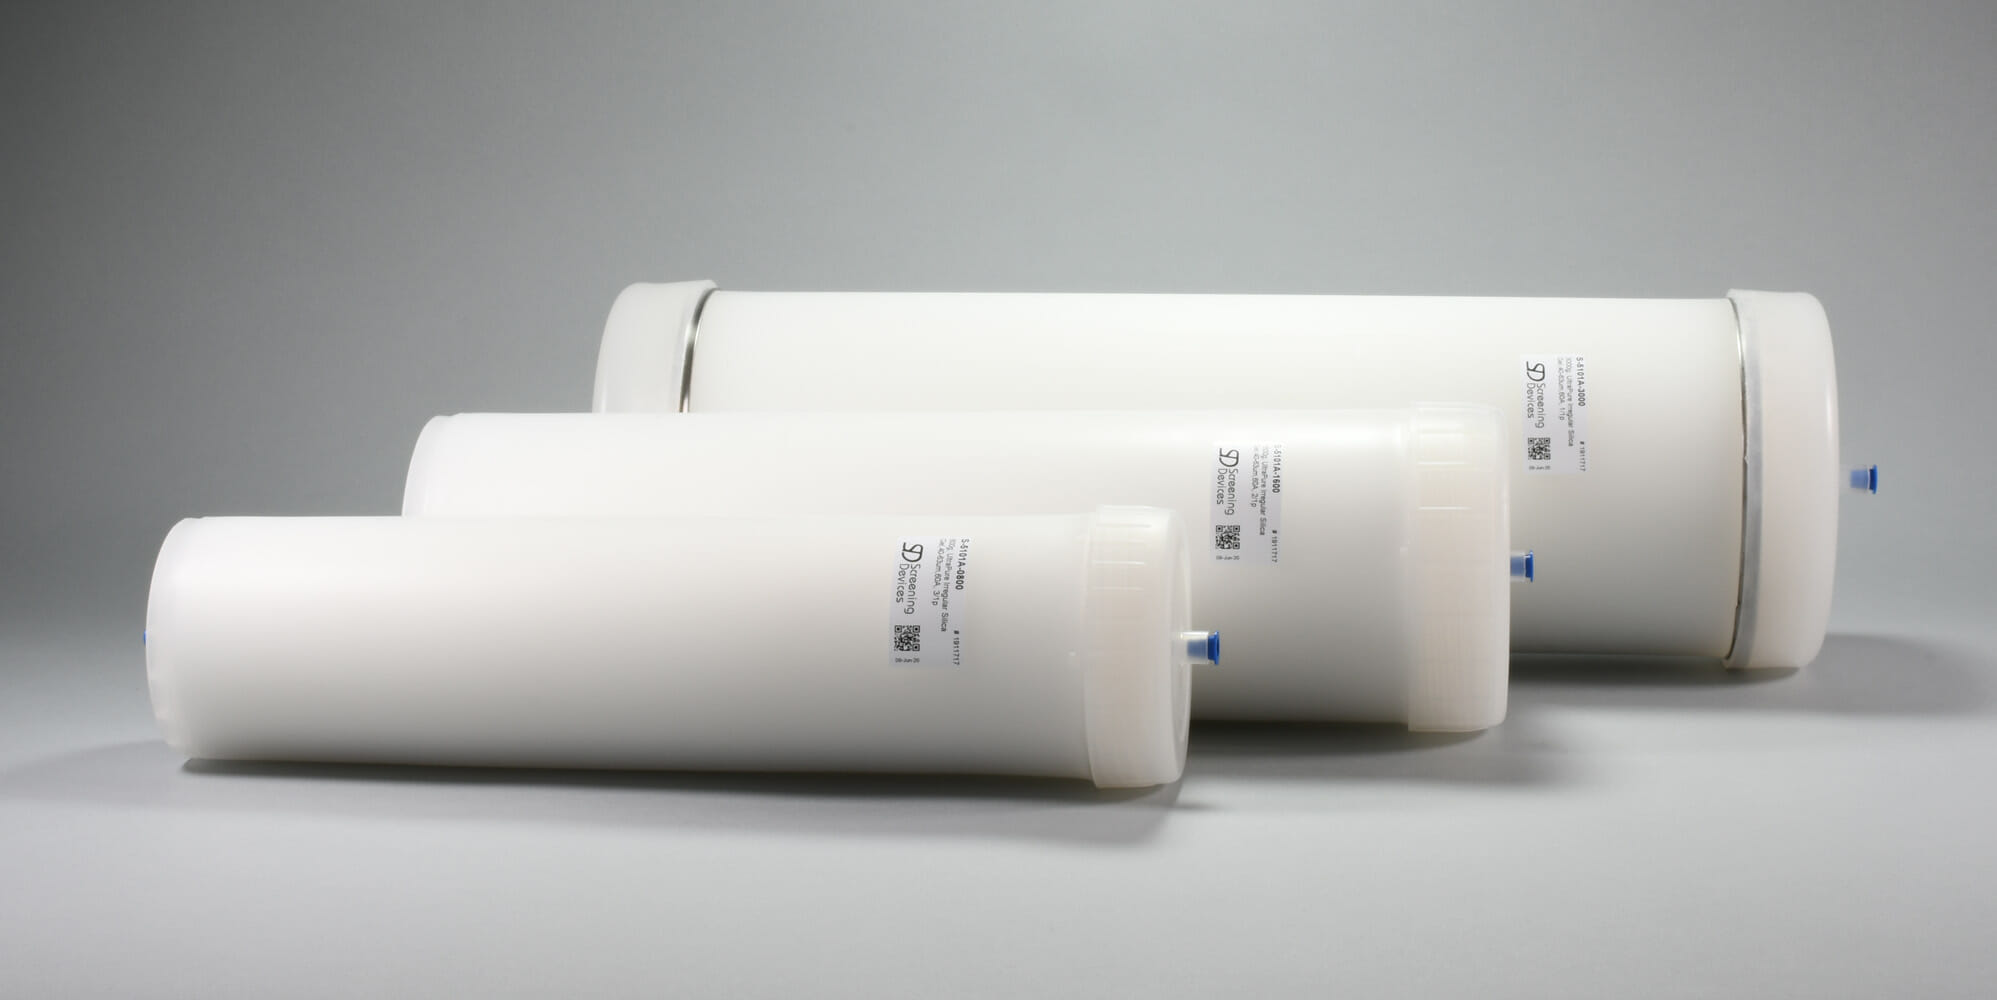 S-5101A-0800, 1600 and 3000g